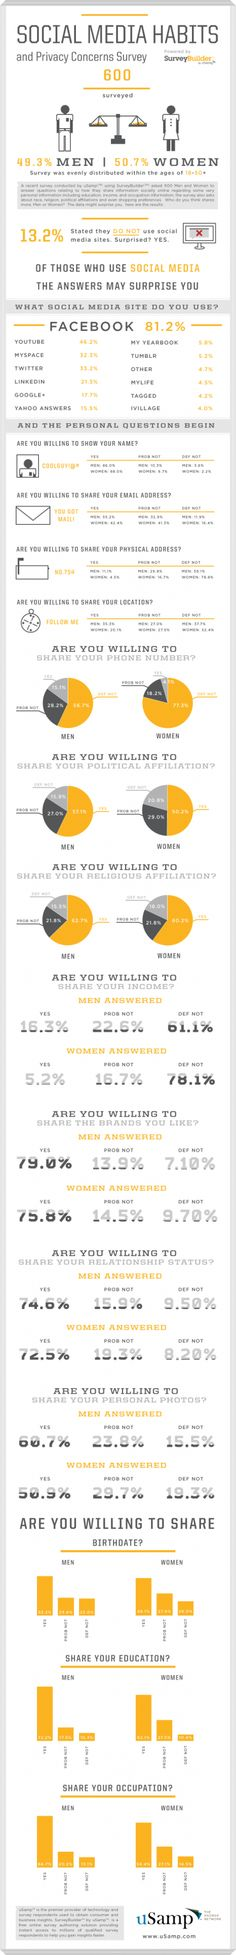 Social Media Habits - broken down between men and women about what they use, like and share.